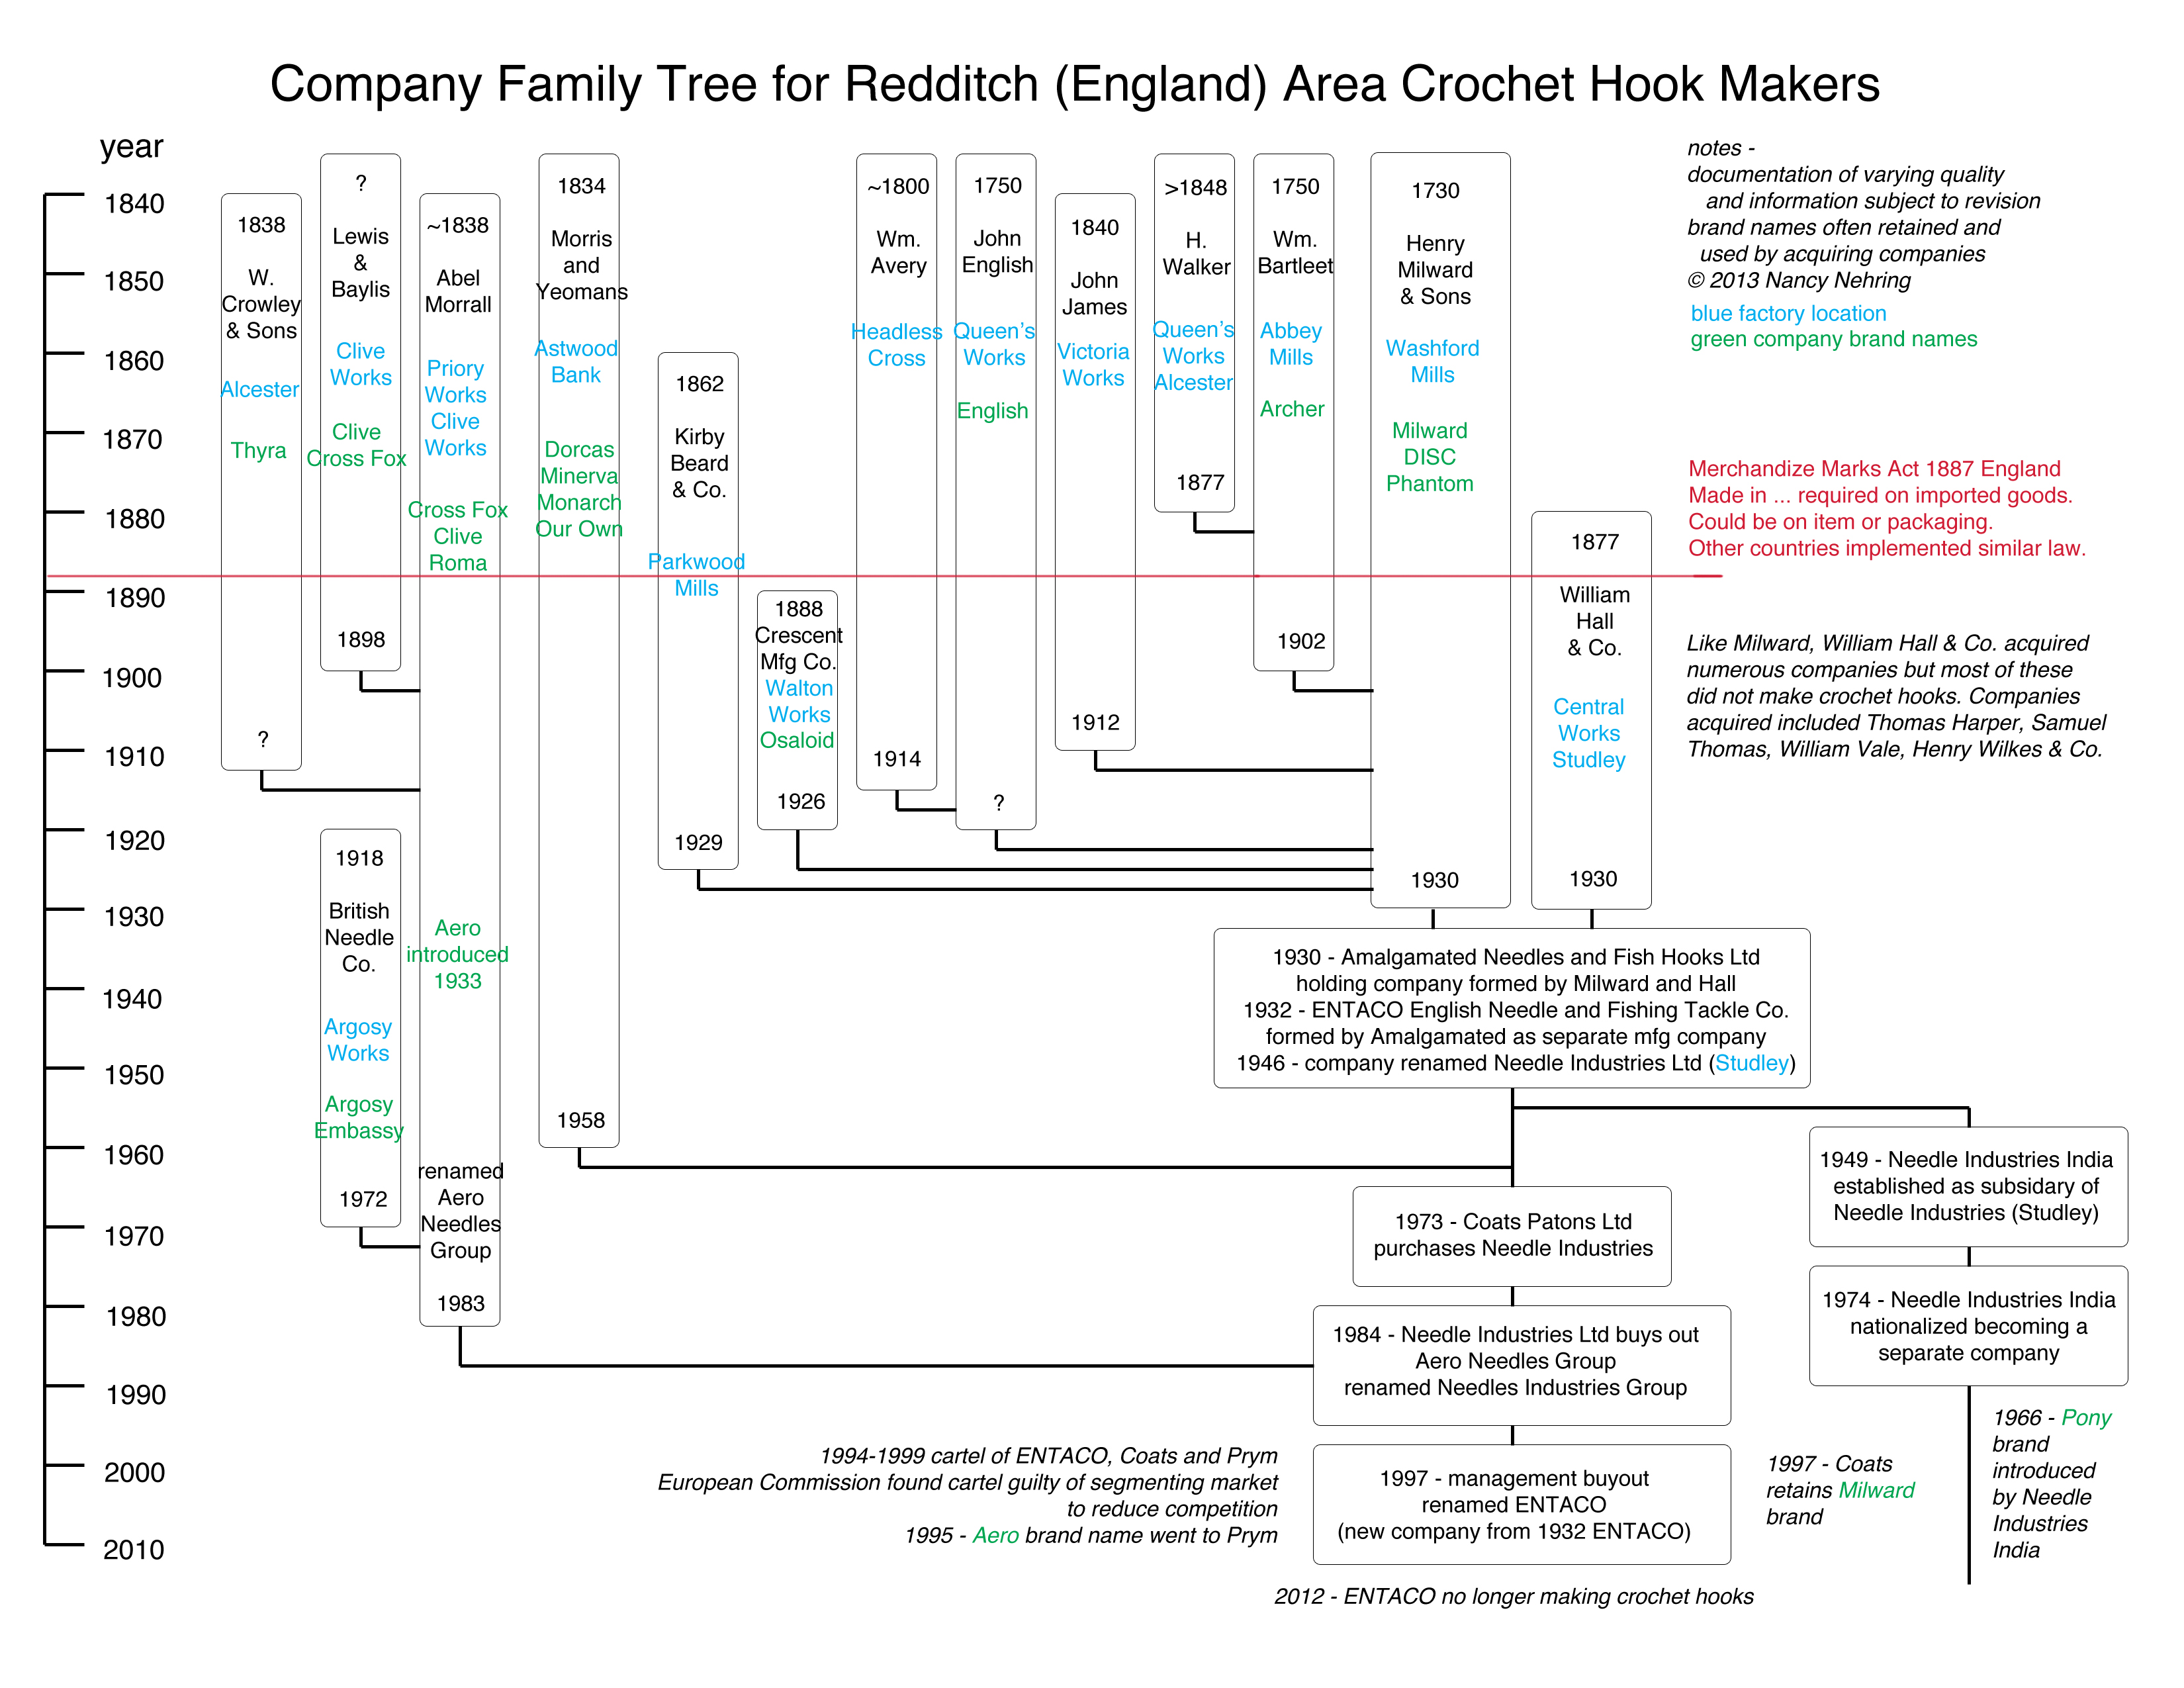 Company Family Tree for Redditch Area Crochet Hook Makers -Lace ...